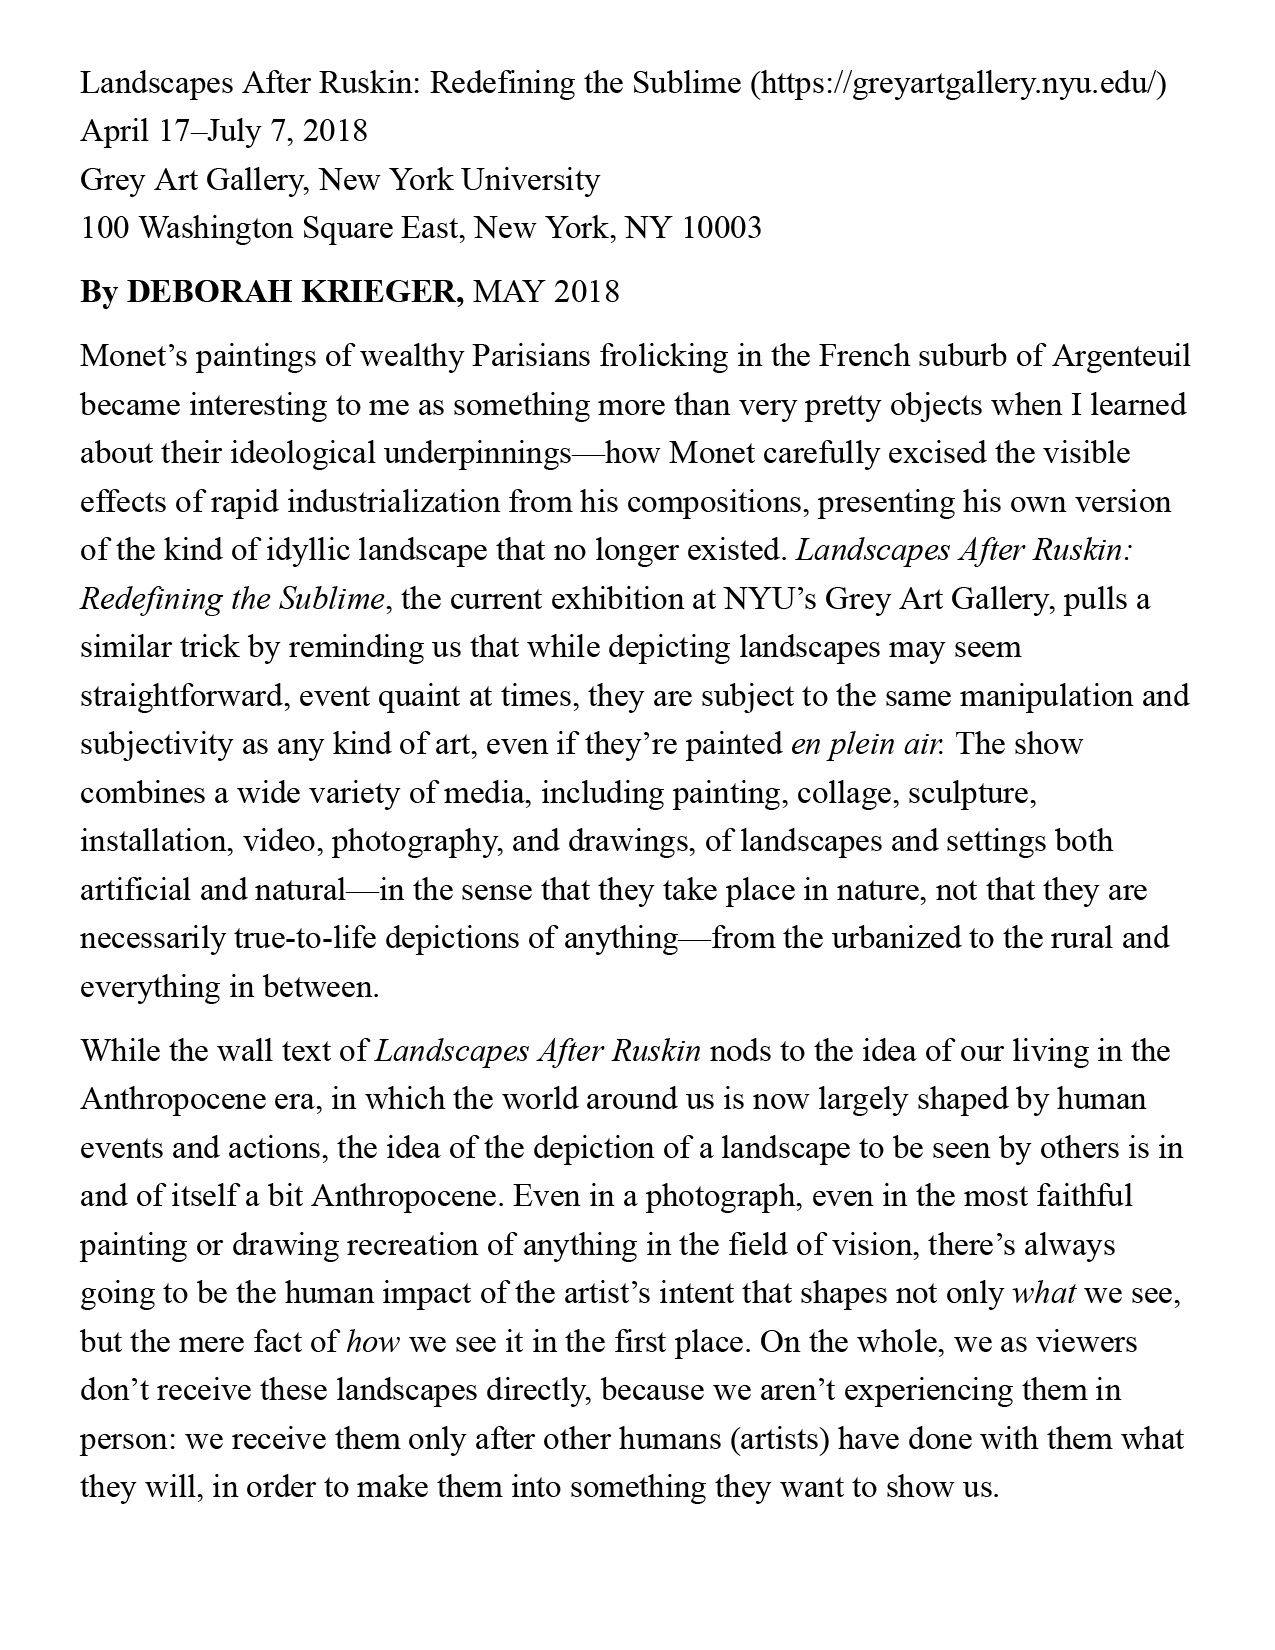 WM-_-whitehot-magazine-of-contemporary-...-Complicated-at-NYU's-Grey-Art-Gallery-2.jpg